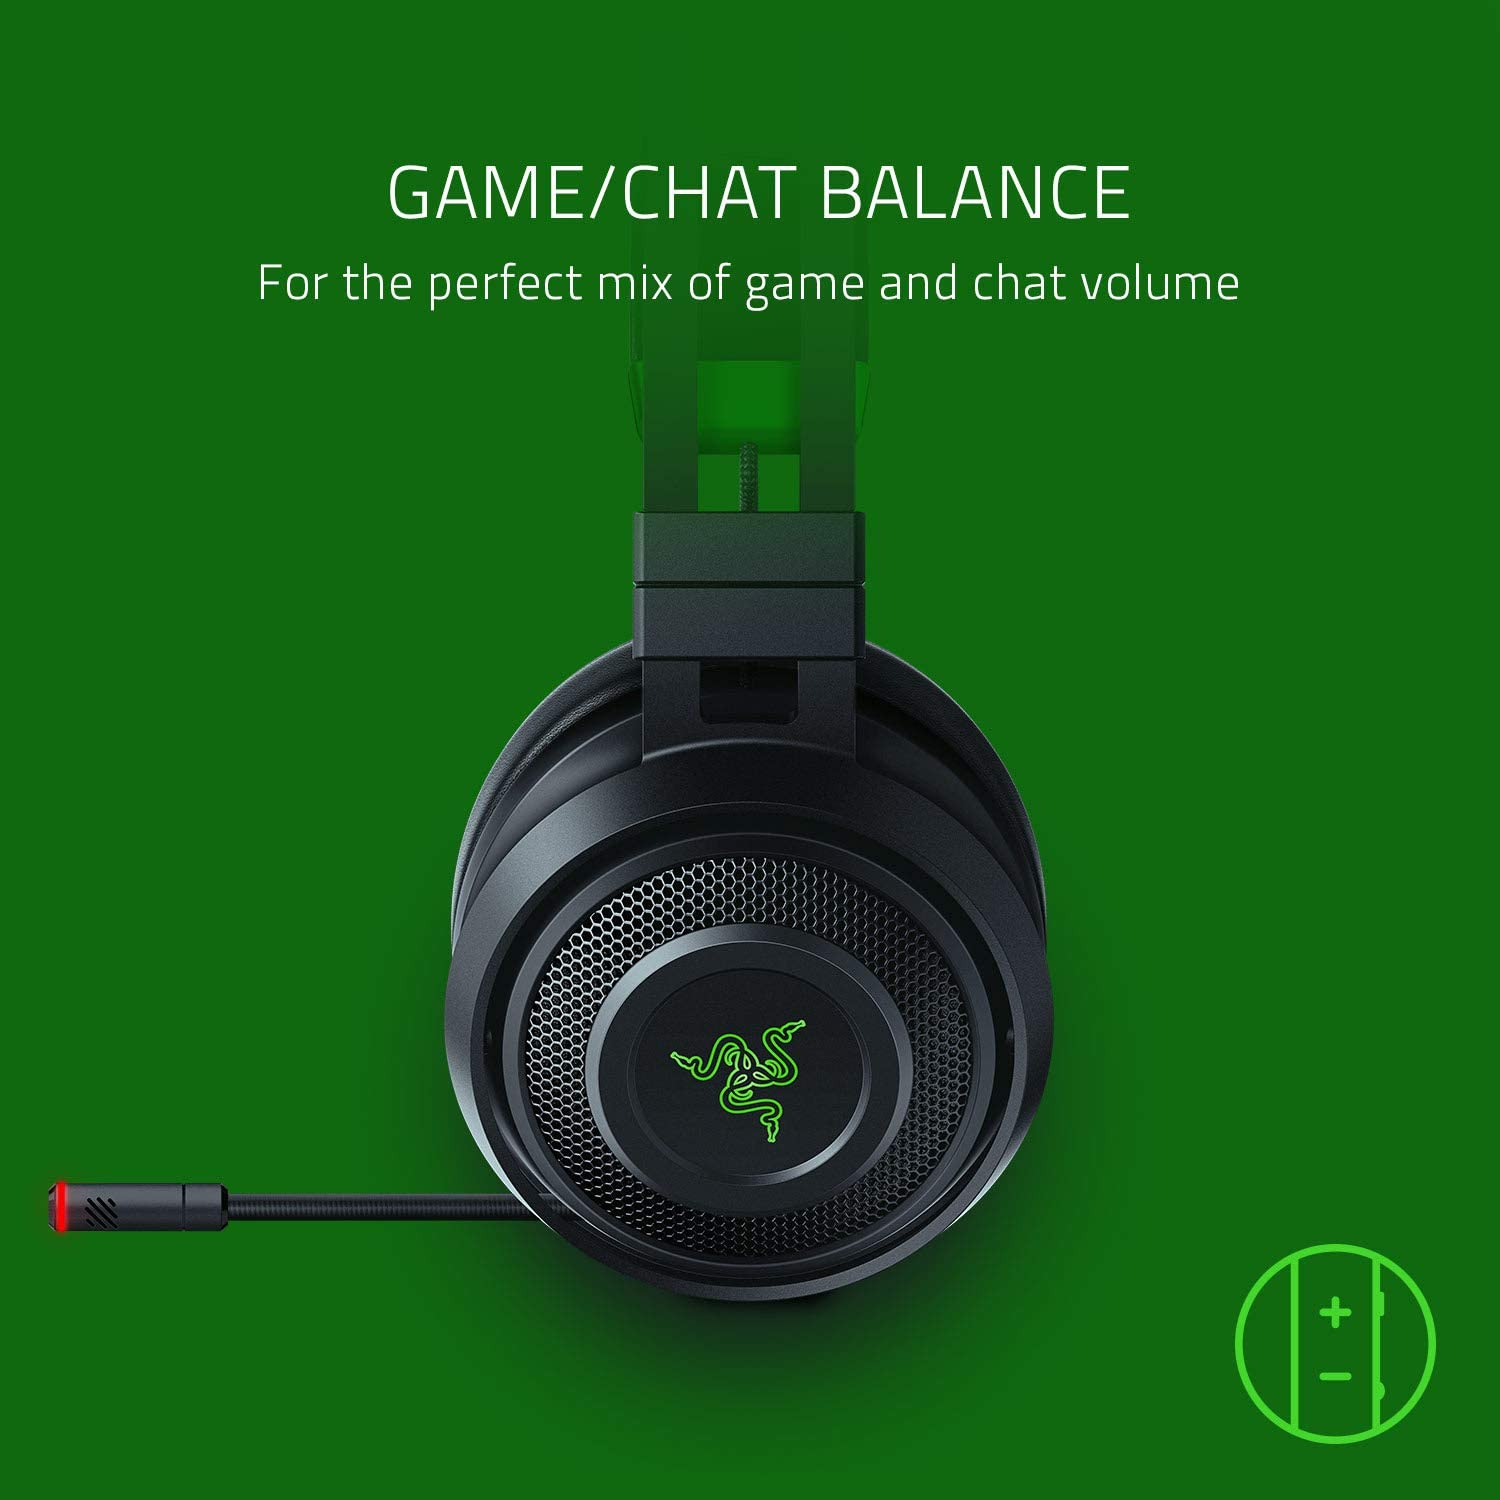 For PC Chroma RGB Razer Nari Ultimate Wireless 7.1 Surround Sound Gaming Headset: THX Audio /& Haptic Feedback Auto-Adjust Headband Retractable Mic Classic Black PS4